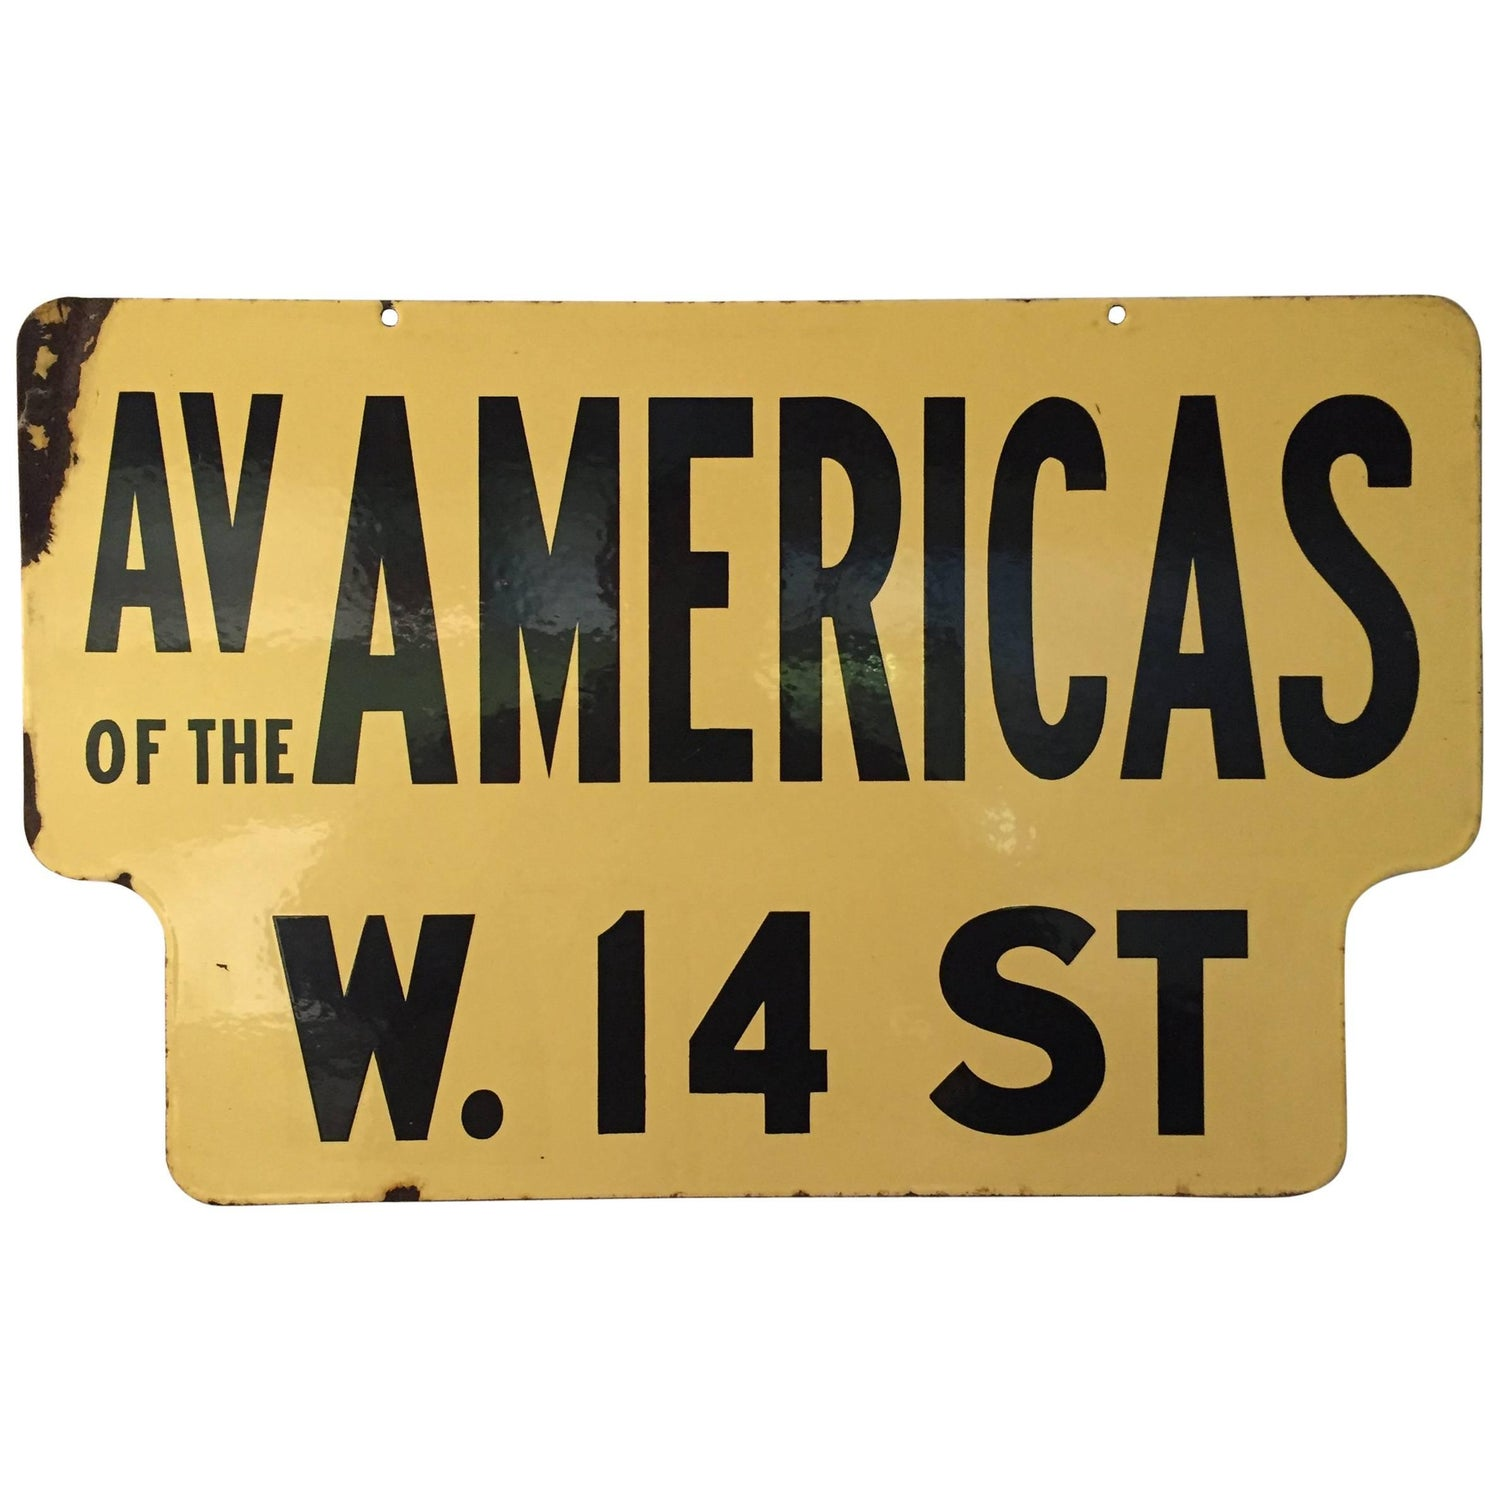 1950s Signs - 135 For Sale at 1stdibs